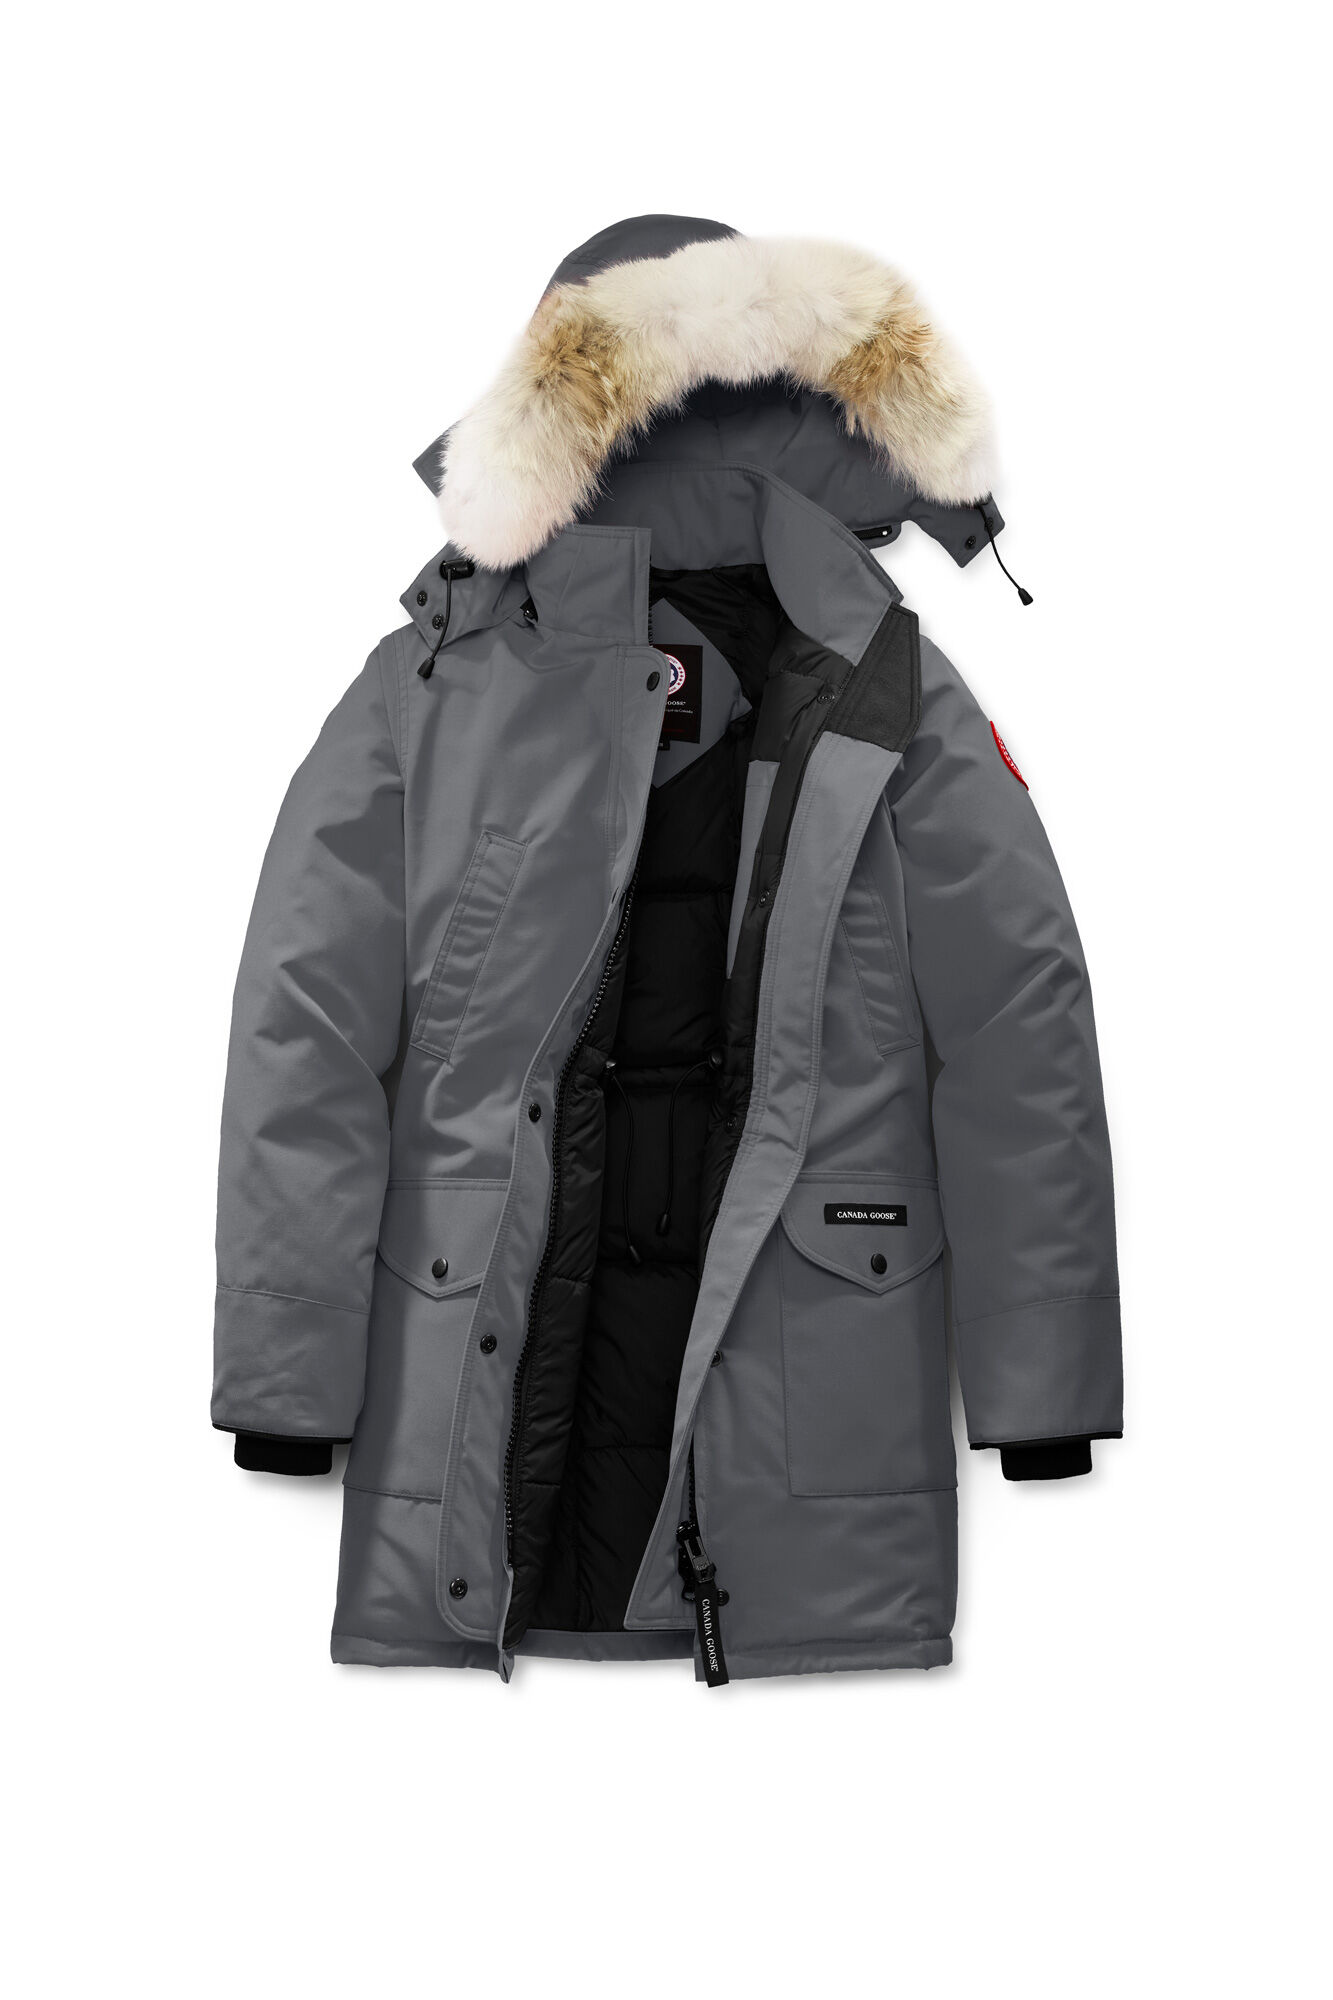 dry cleaning a canada goose jacket